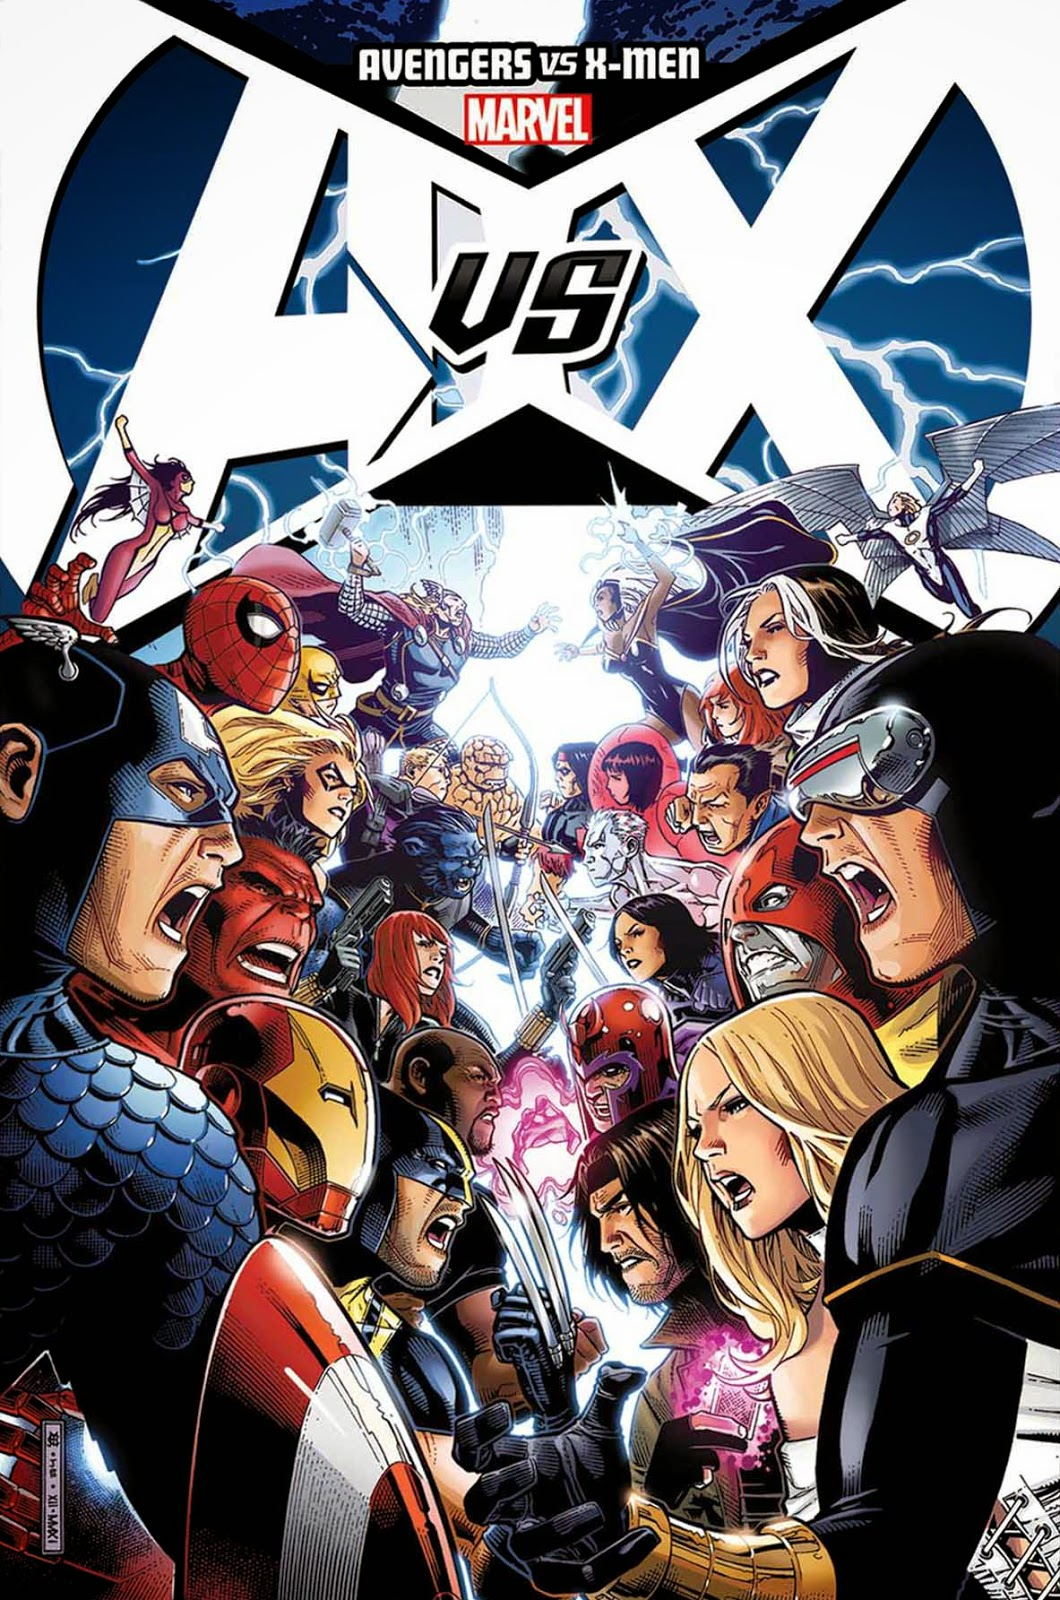 X men vs the avengers